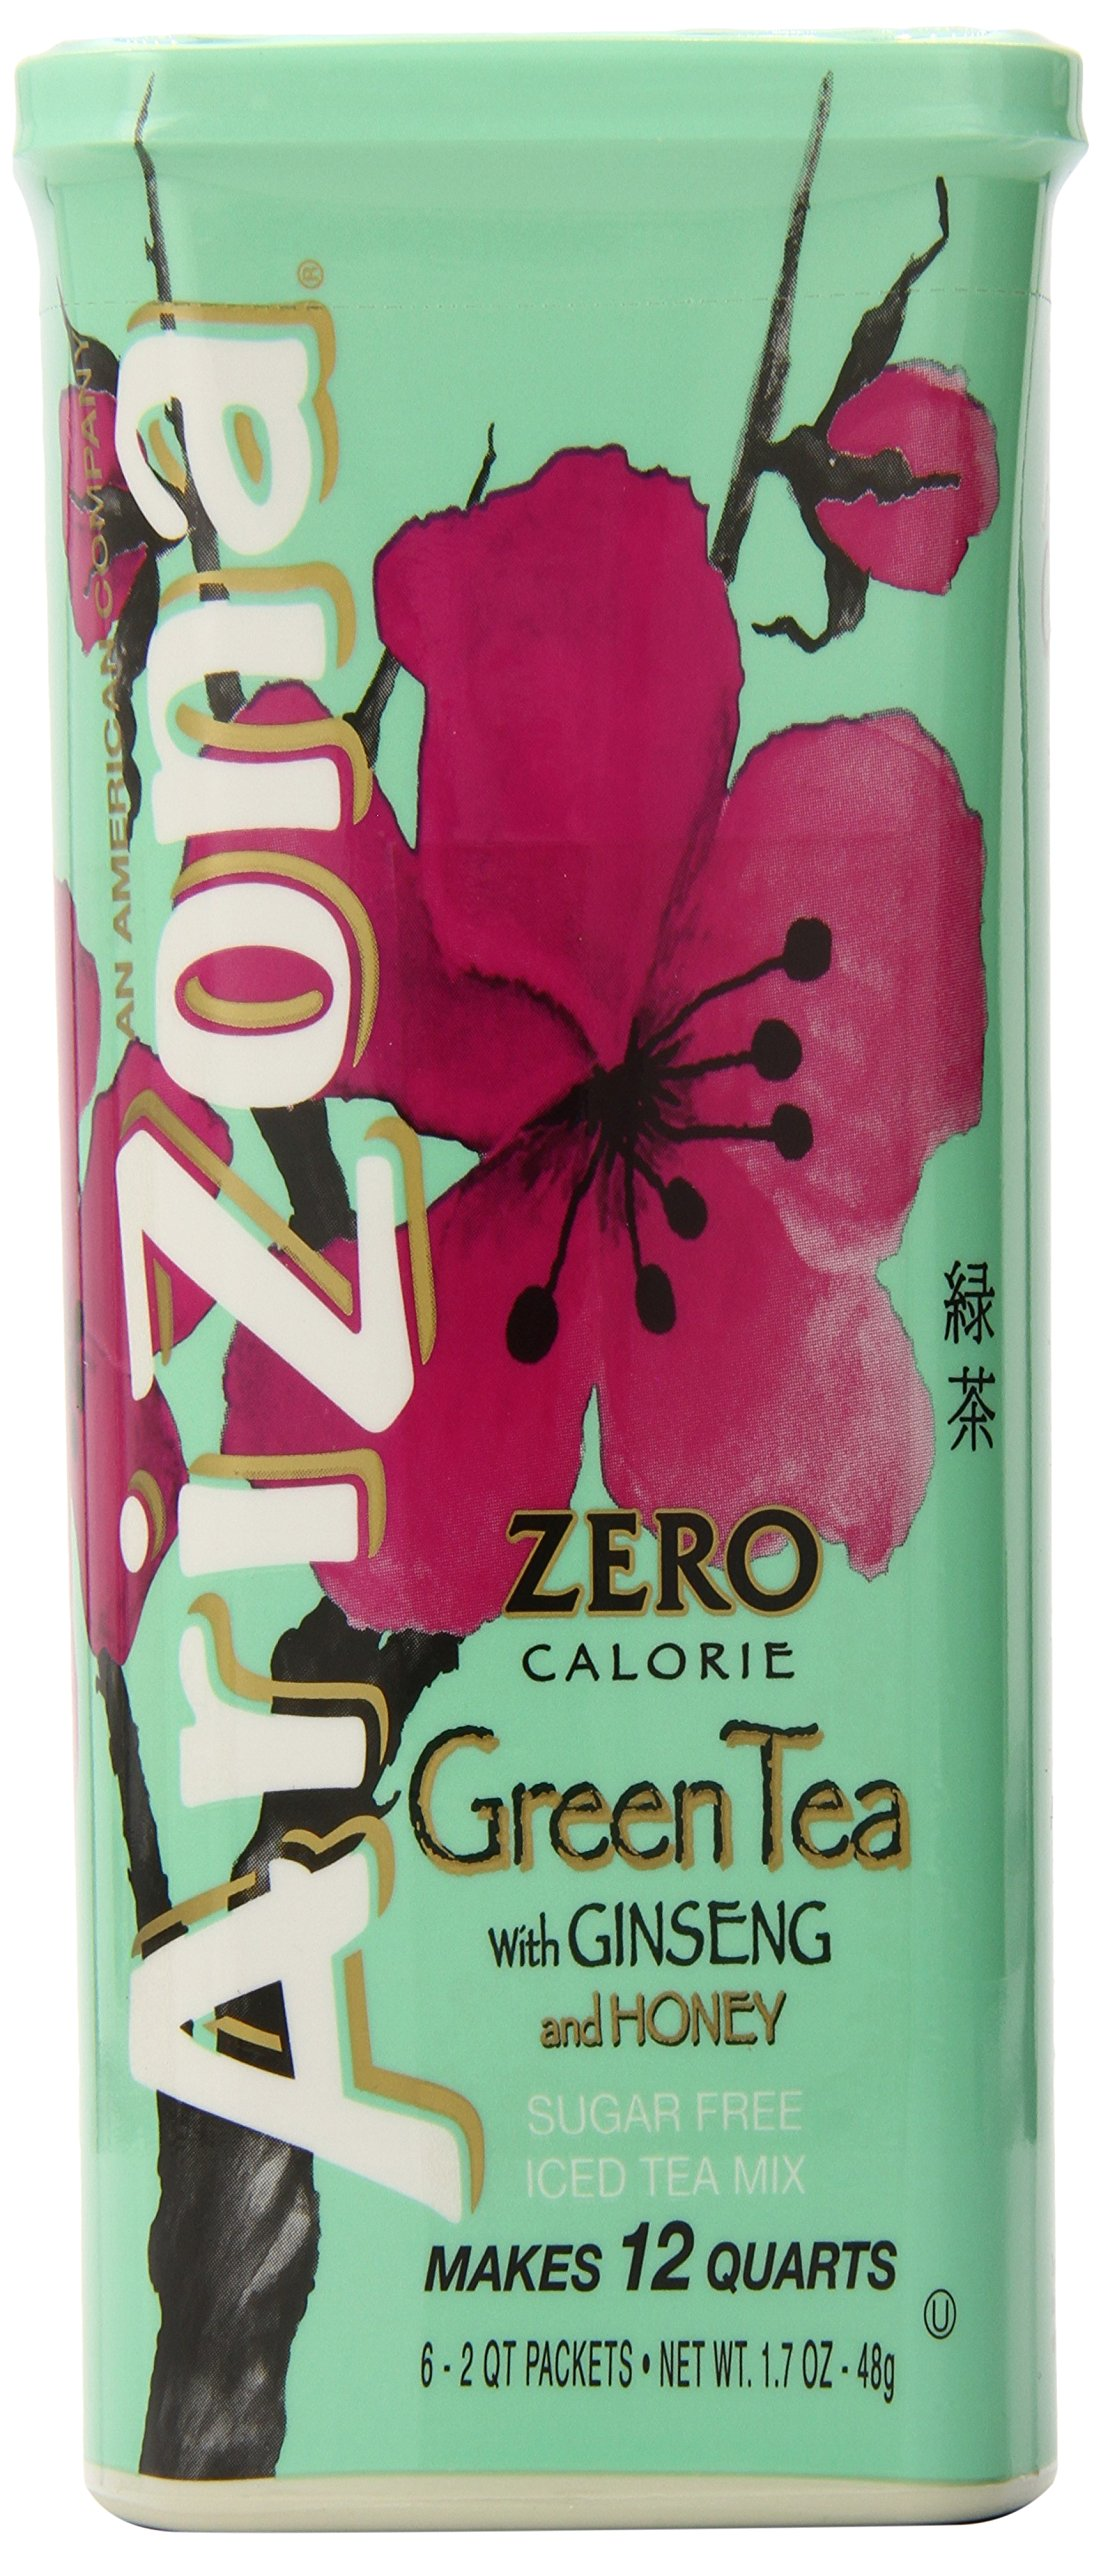 AriZona Sugar Free Green Tea with Ginseng & Honey Iced Tea Mix, 2 QT Canister (Pack of 4),Low Calorie Single Serving Drink Powder Packets, Just Add Water for Deliciously Refreshing Iced Tea Beverage by AriZona